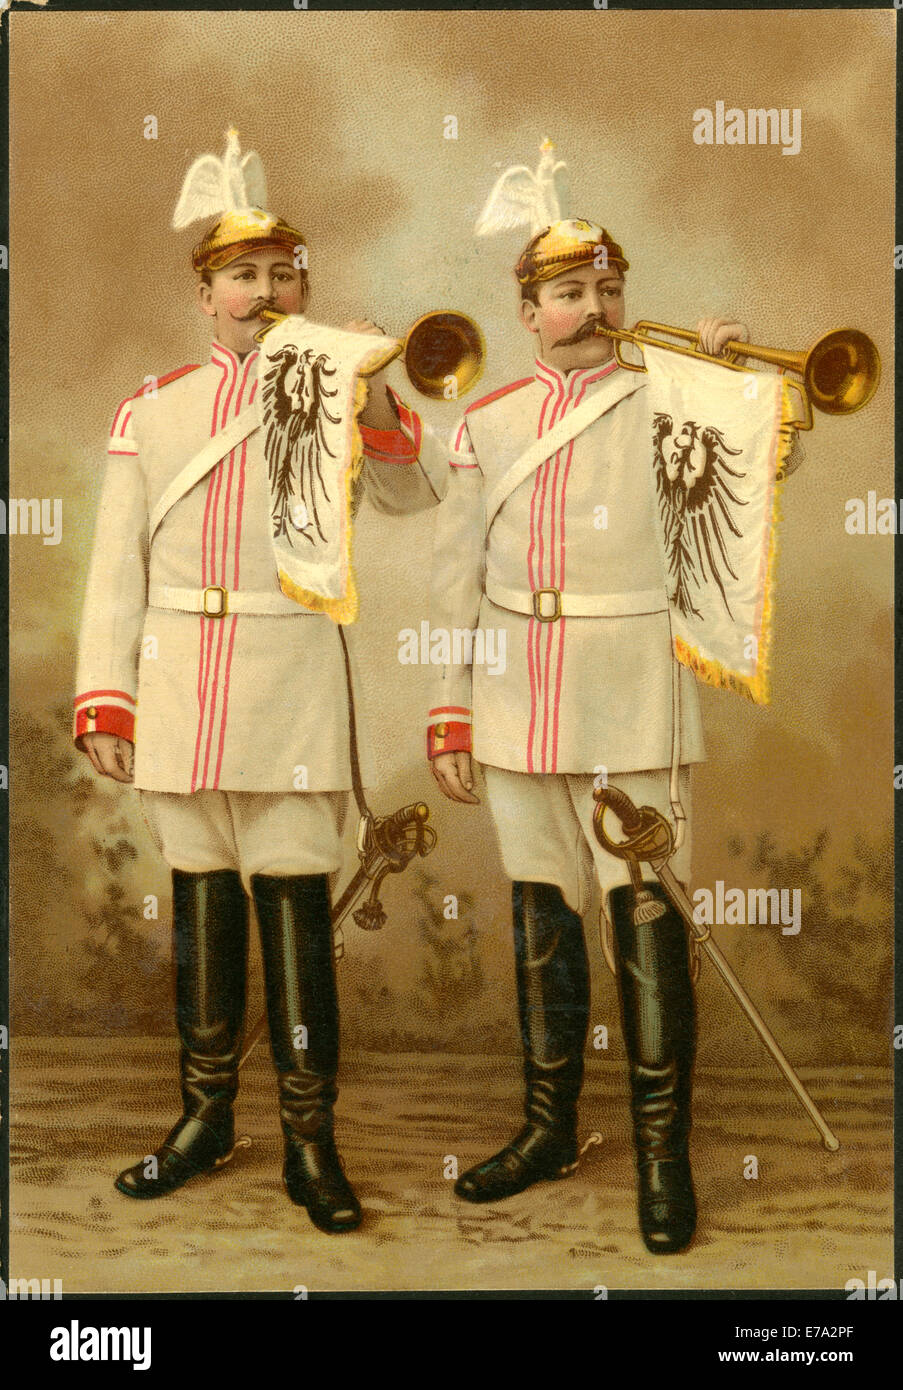 German Military Trumpeters During World War I, 'German Village Band', Chromolithograph, circa 1917 - Stock Image